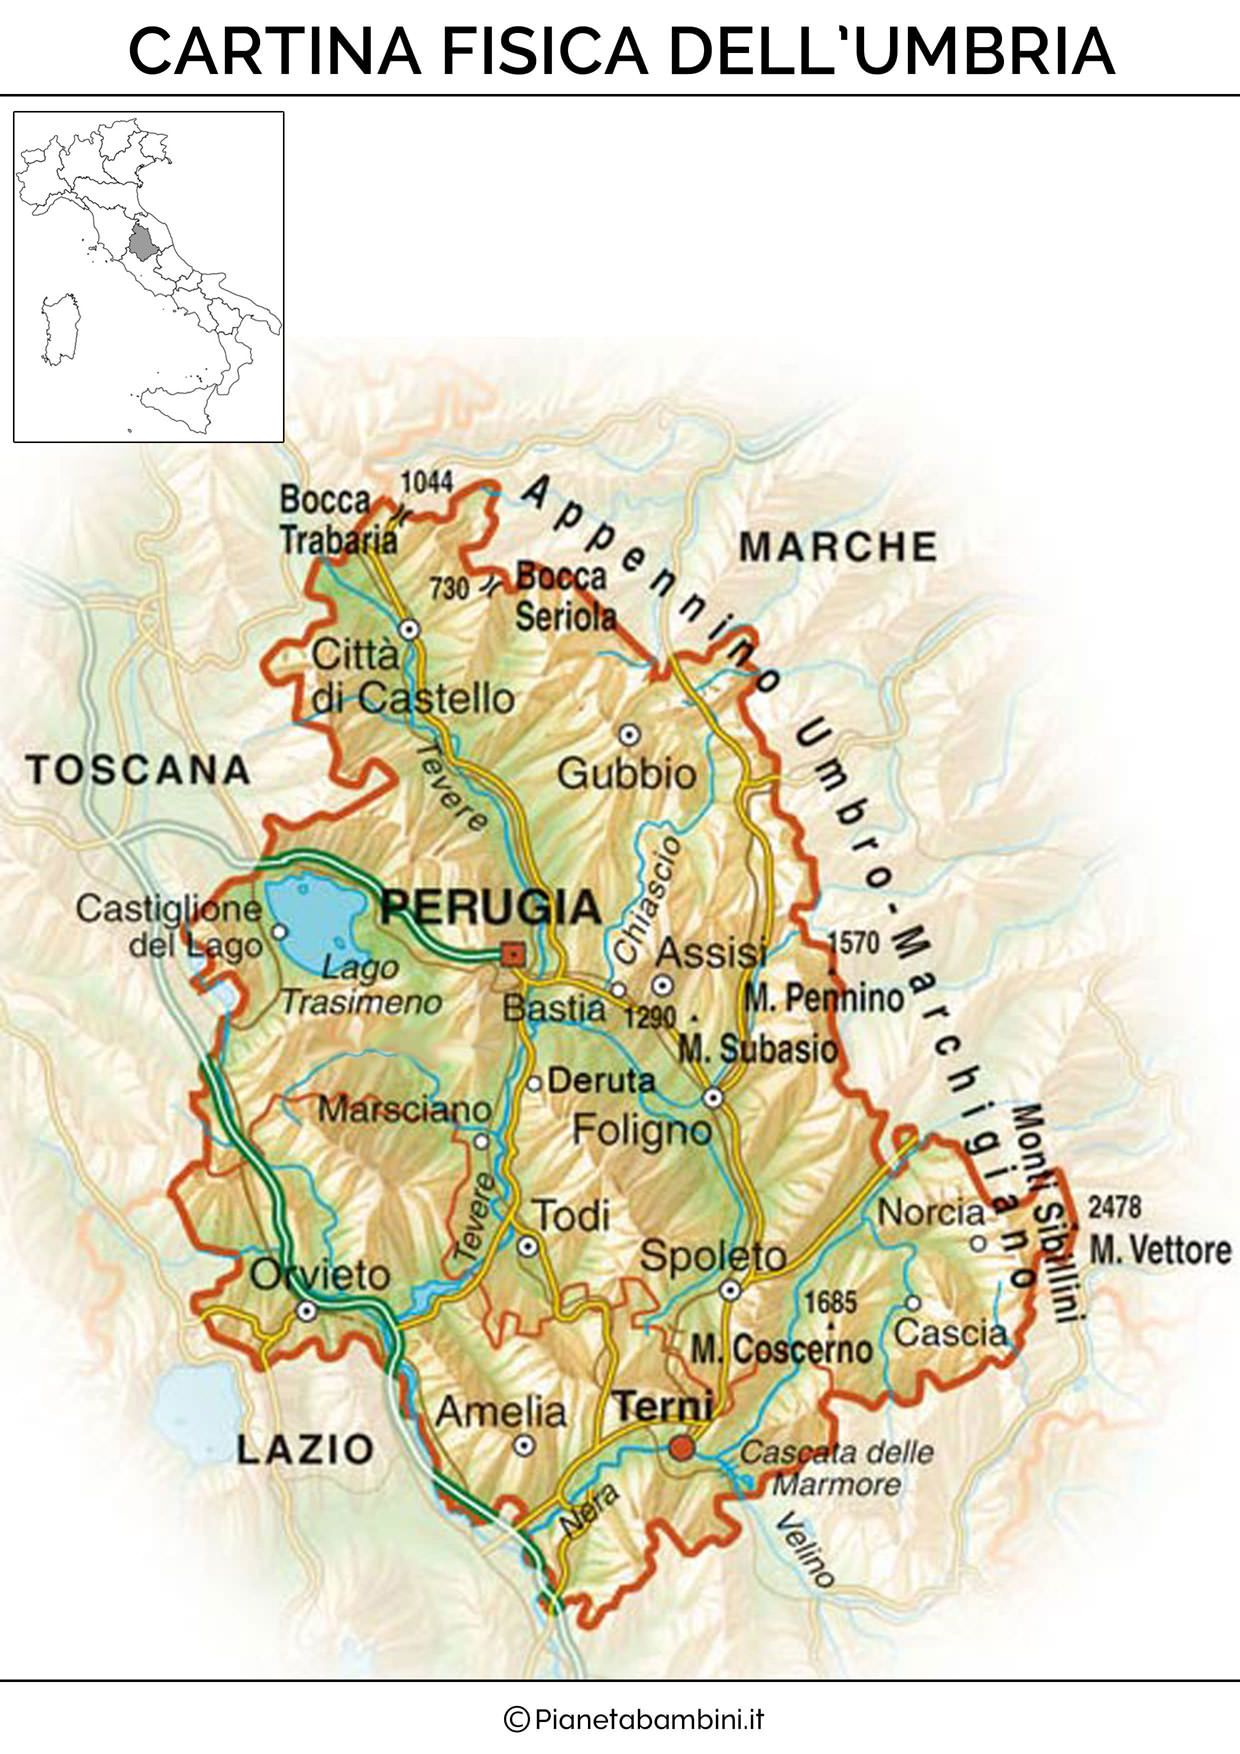 Cartina Dell Abruzzo Fisica.Cartina Muta Fisica E Politica Dell Umbria Da Stampare Mappe Illustrate Umbria Mappe